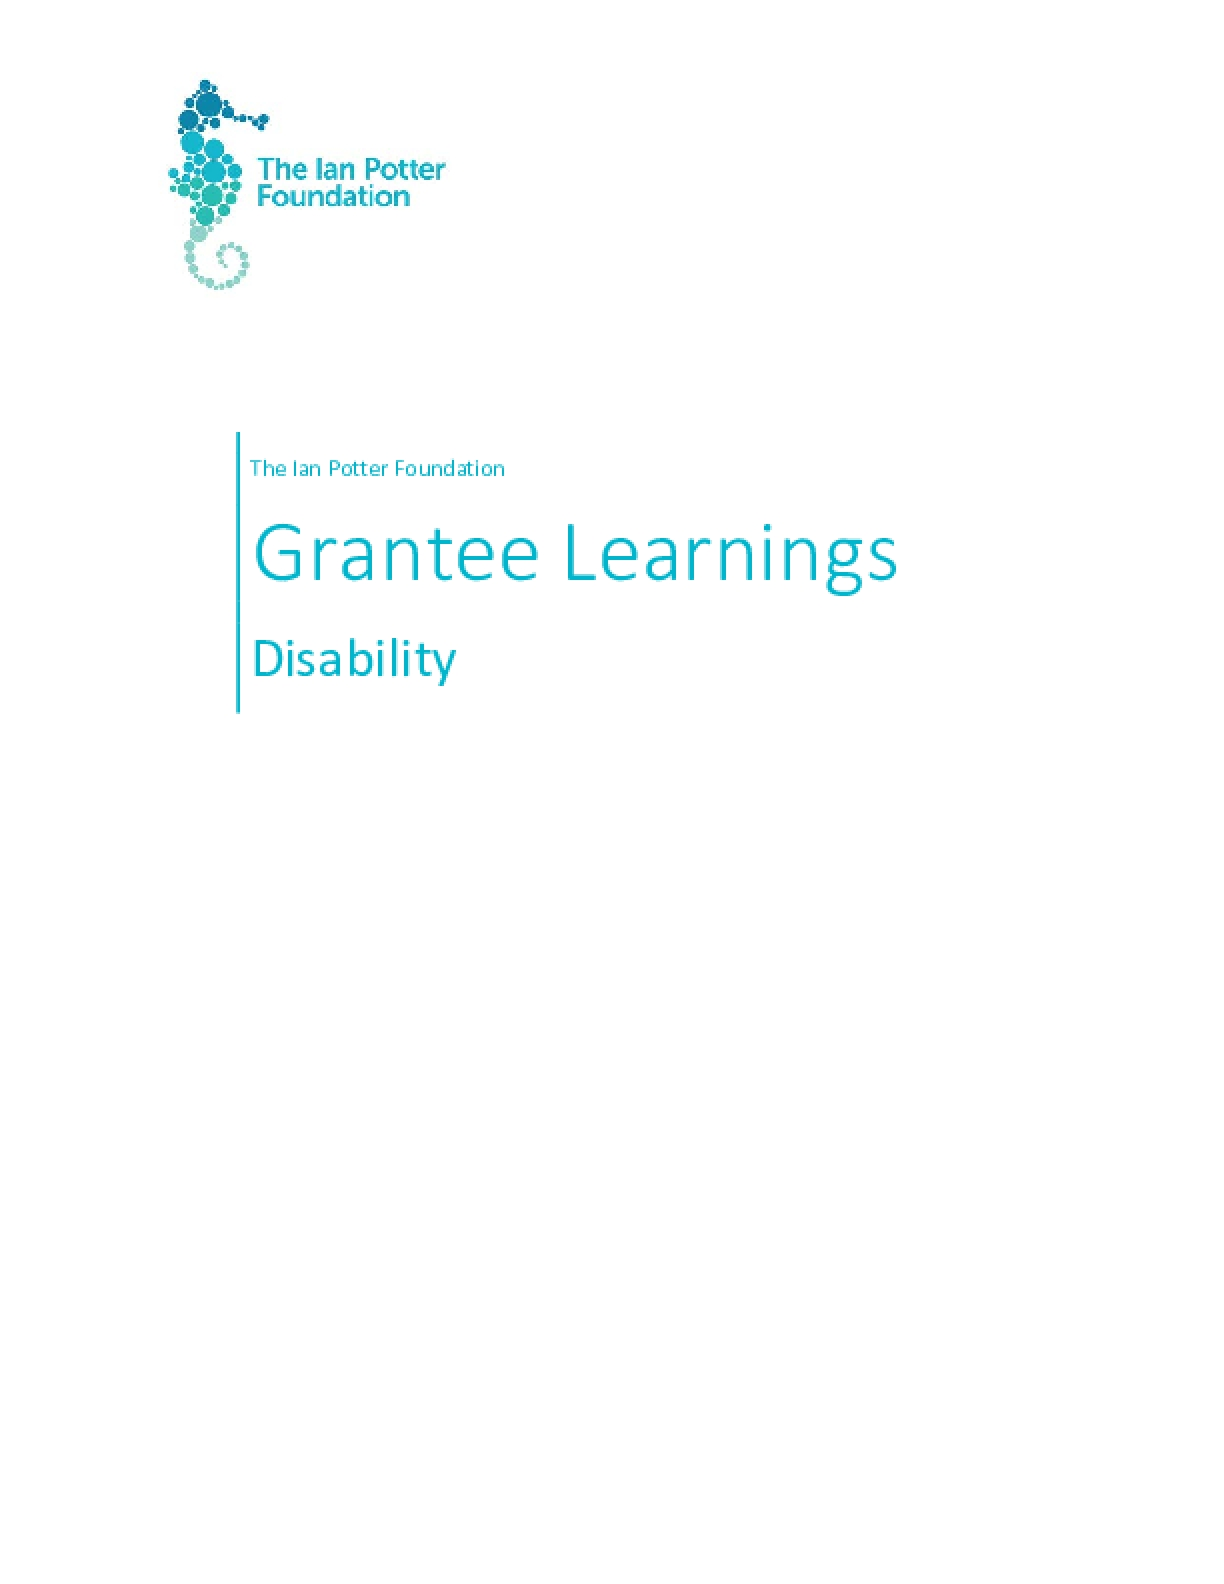 Grantee Learnings: Disability